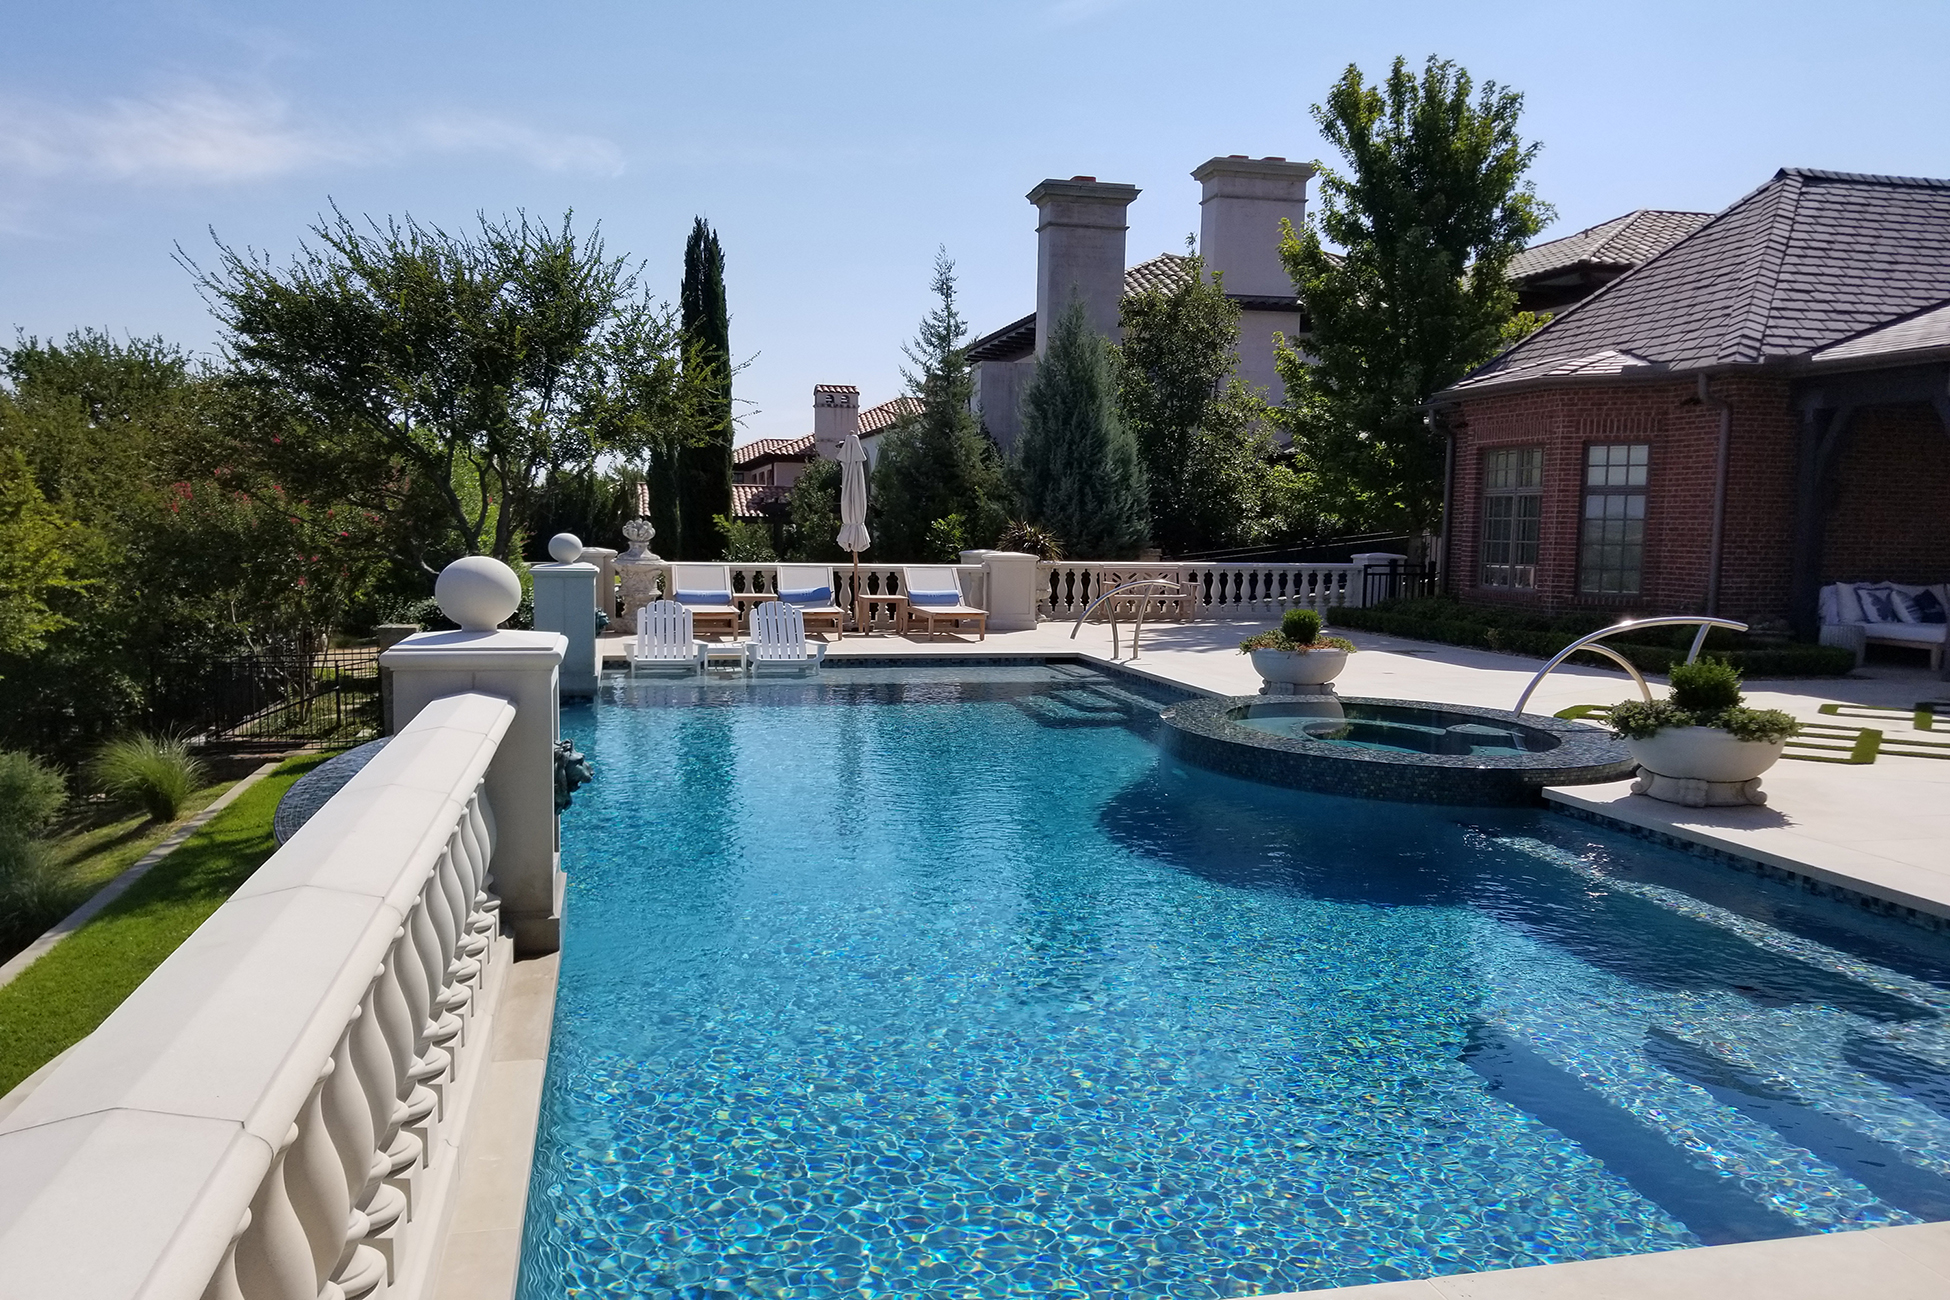 Boutique pool, including spa and lounge